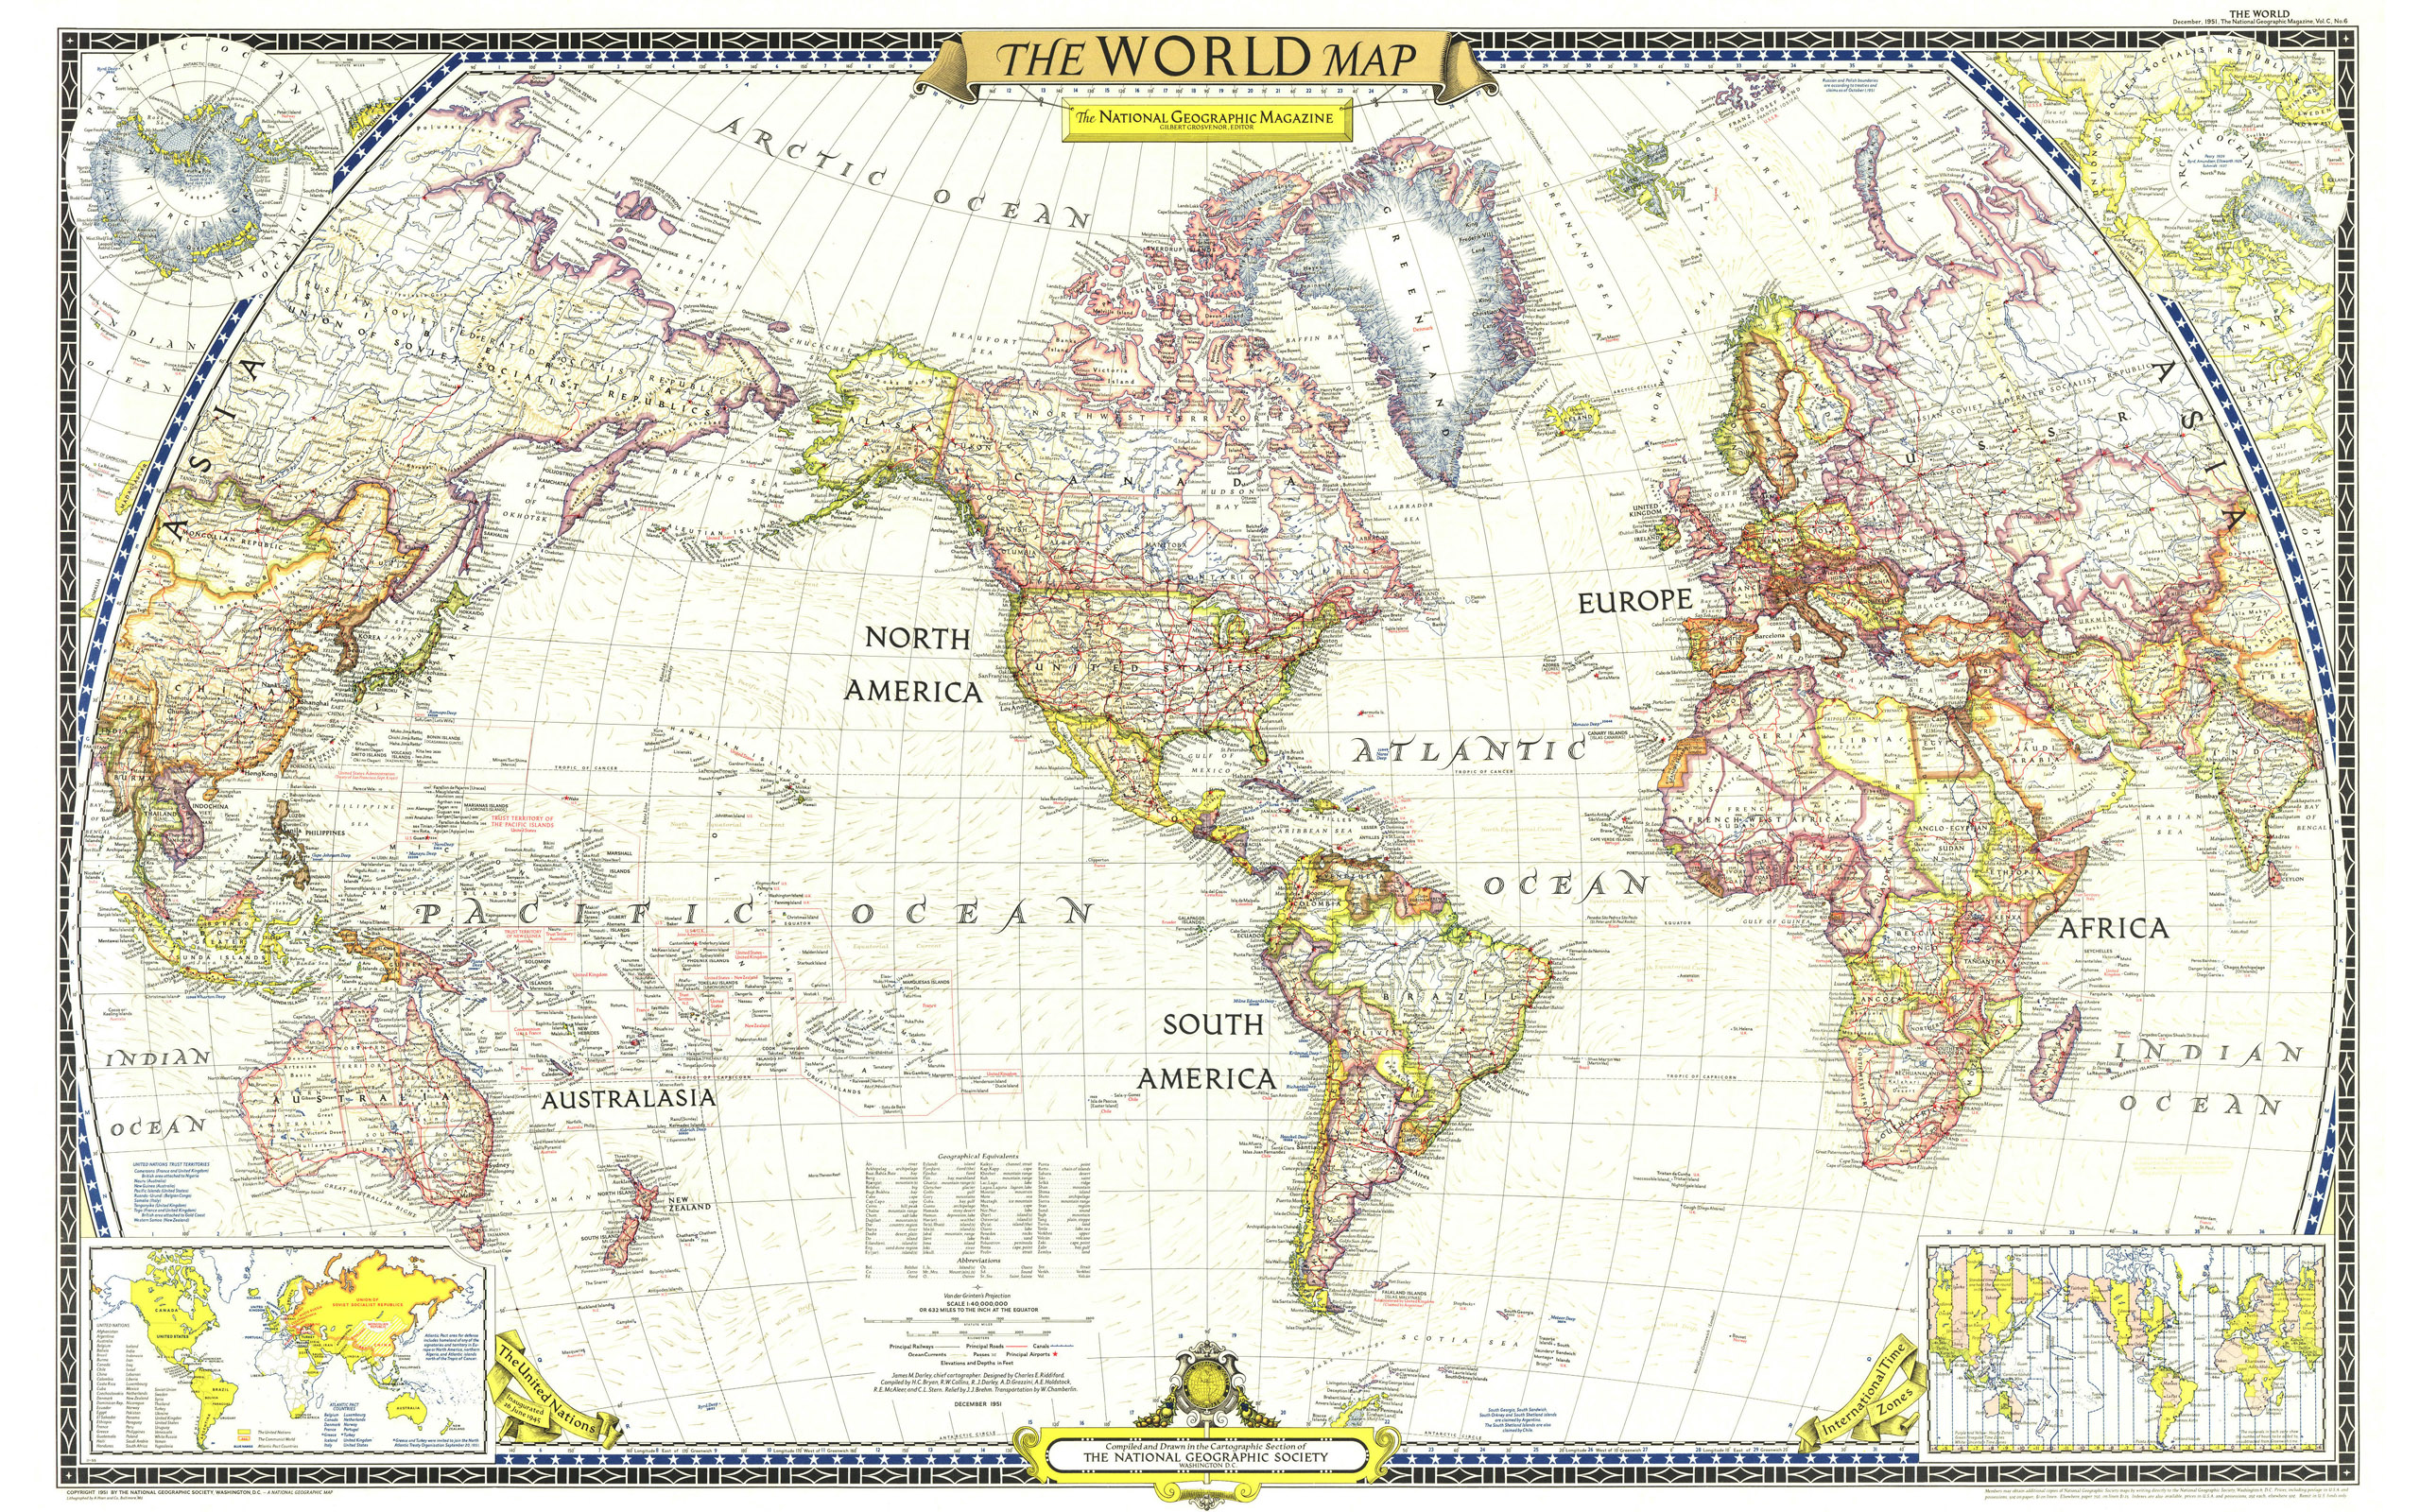 Large world map with countries world maps download travel maps large world map with countries world maps download travel maps large world maps download map world large major tourist digital modern political world map gumiabroncs Gallery